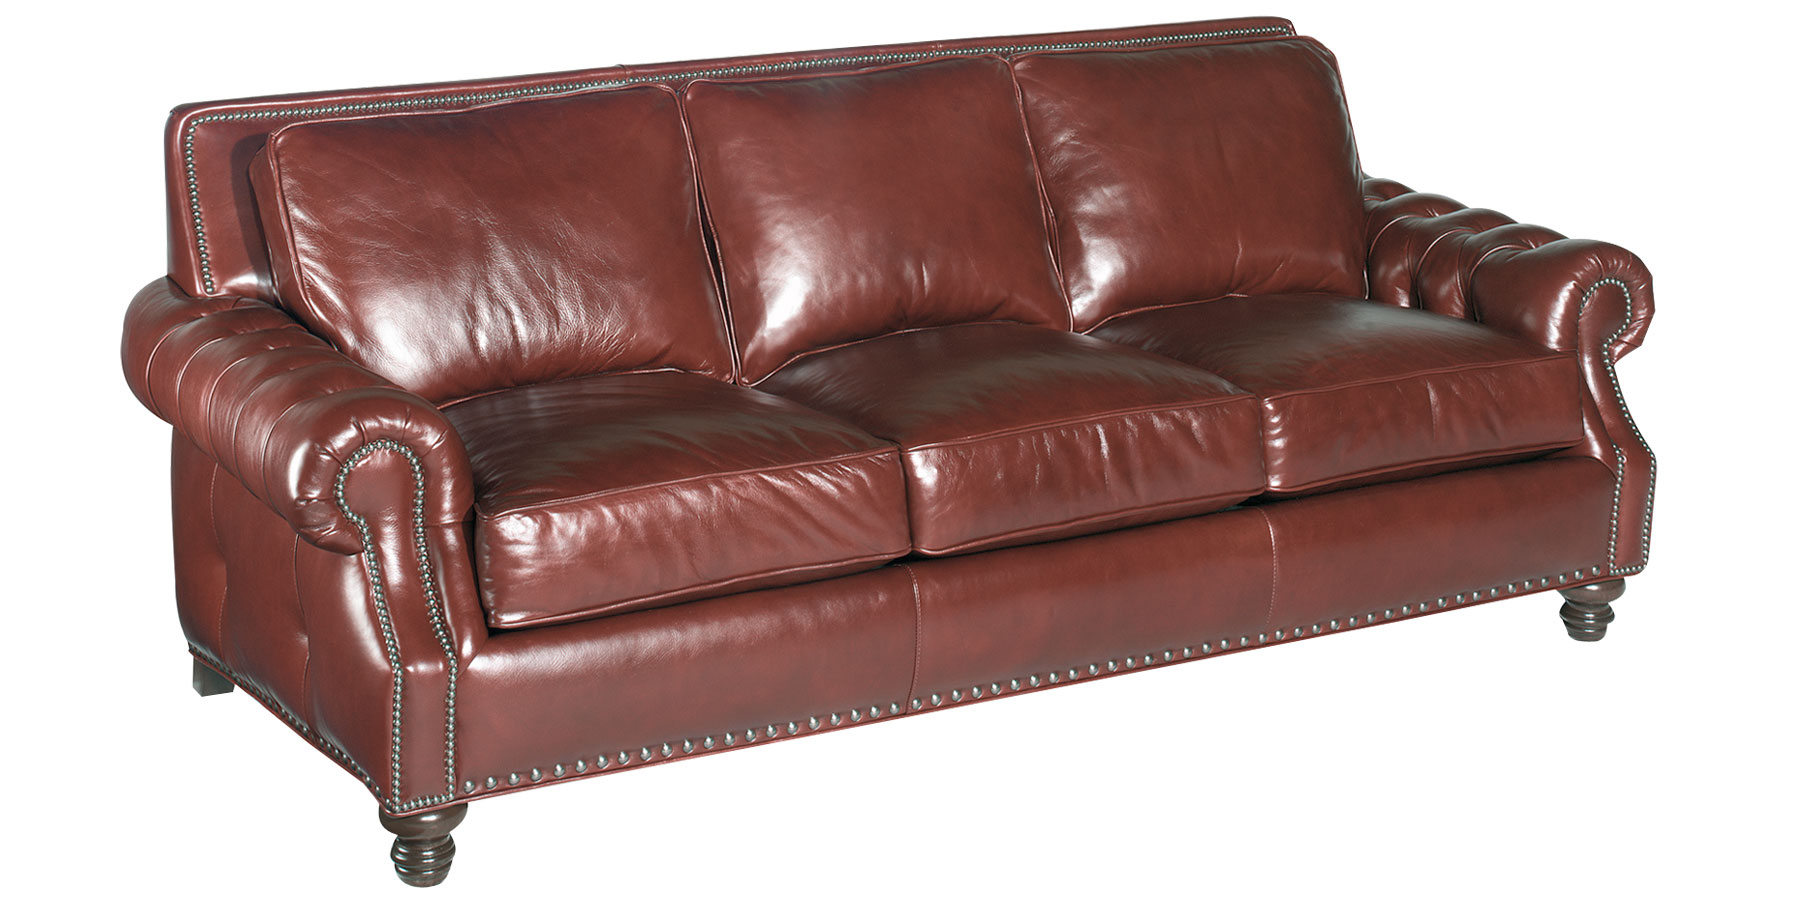 Leather Grand Scale Button Tufted Pillow Back Sofas Club Furniture